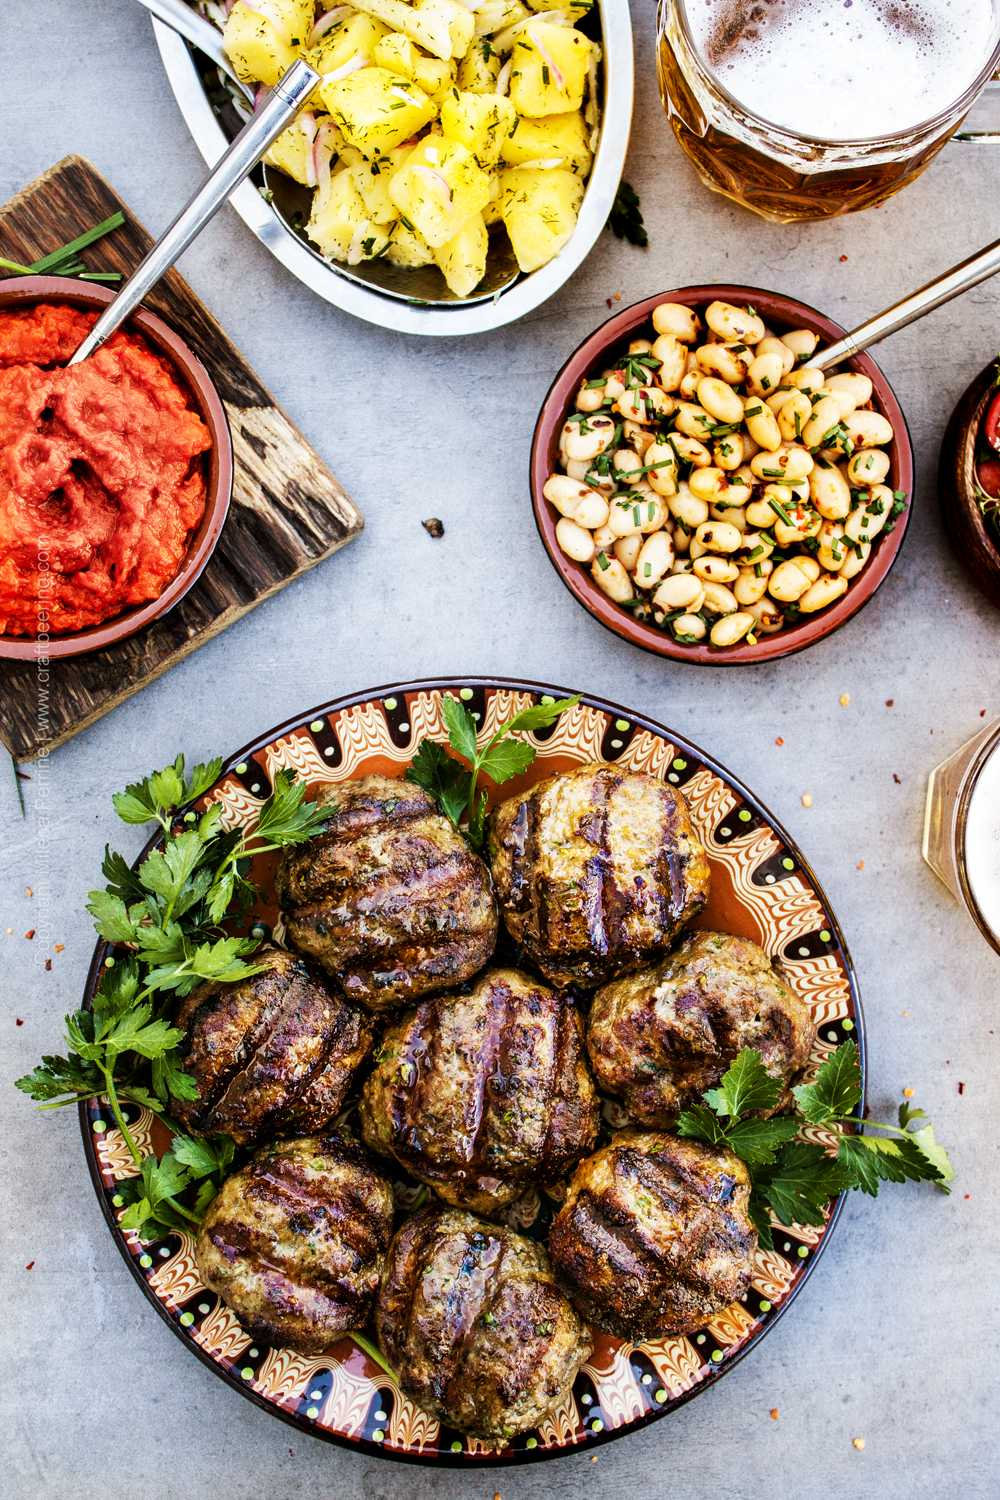 Grilled kafta served with traditional sides - luitenitsa, potato salad, bean salad and beer.